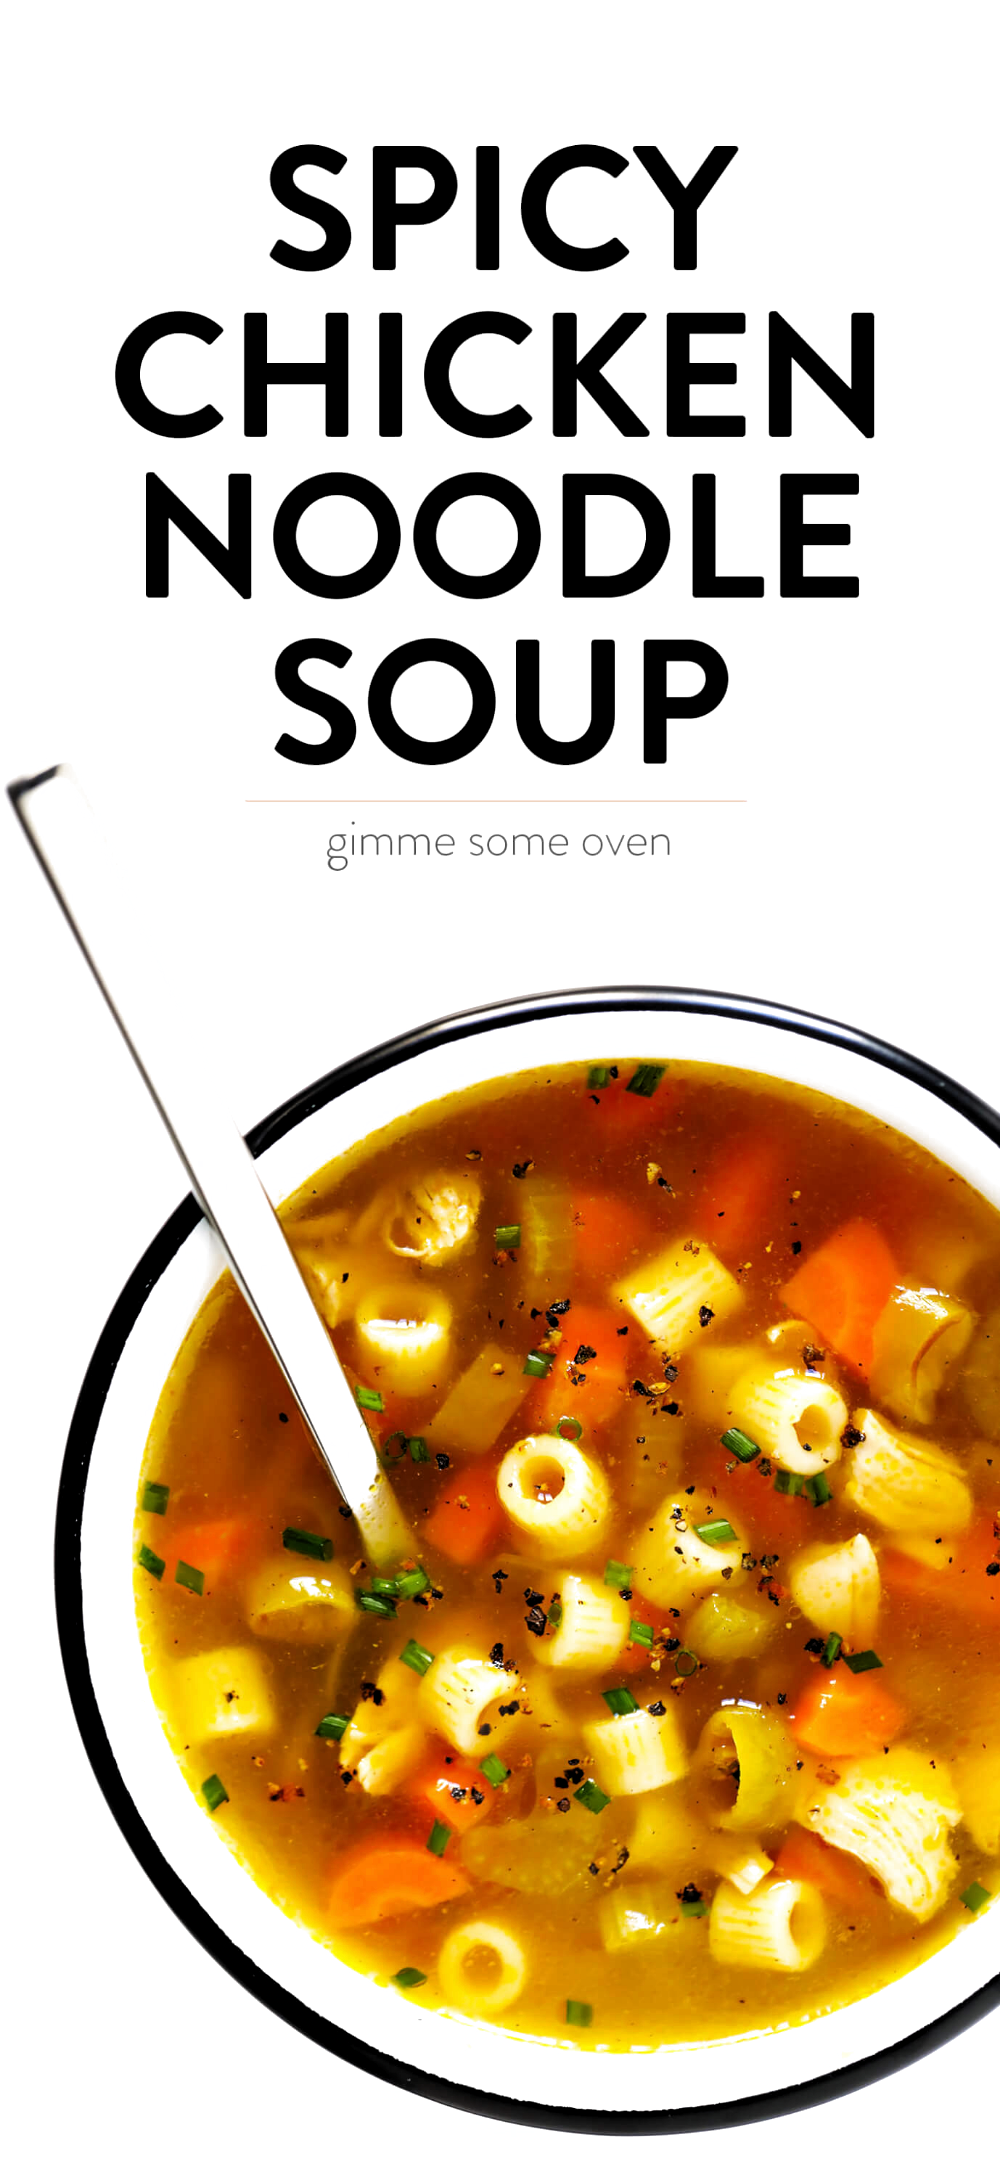 LOVE this Spicy Pepperoncini Chicken Noodle Soup recipe! Its quick and easy to make, and the pepperoncini peppers add the perfect extra bit of heat and tang. Total comfort food!   gimmesomeoven.com #soup #chicken #chickennoodlesoup #pepperoncini #italian #spicy #comfortfood #dinner #recipe